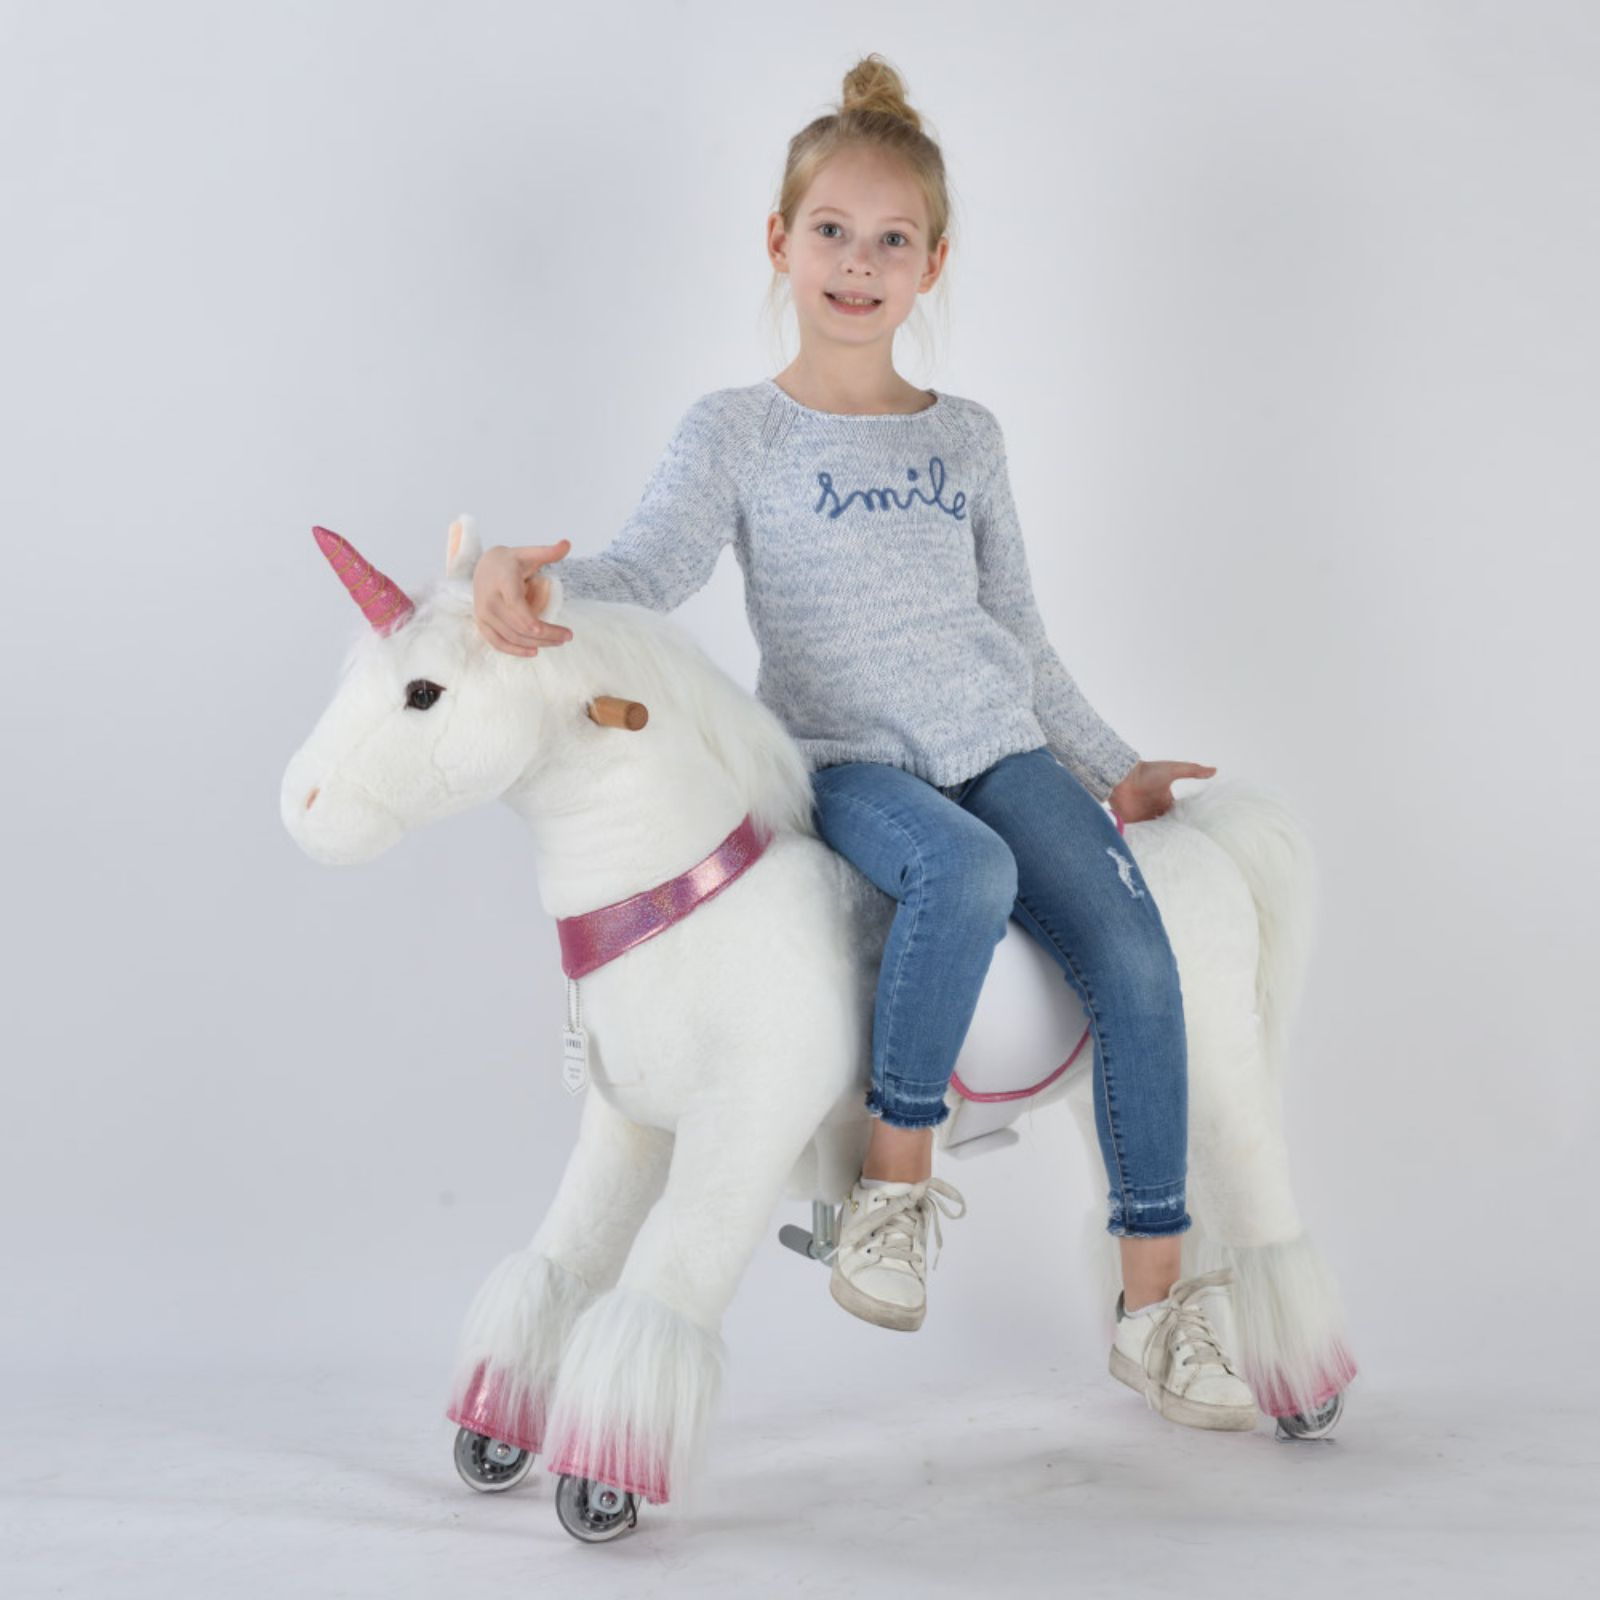 UFREE Medium 36'' Ride-on Unicorn for Children 4-9 Years Old. (White Unicorn with Pink Horn)